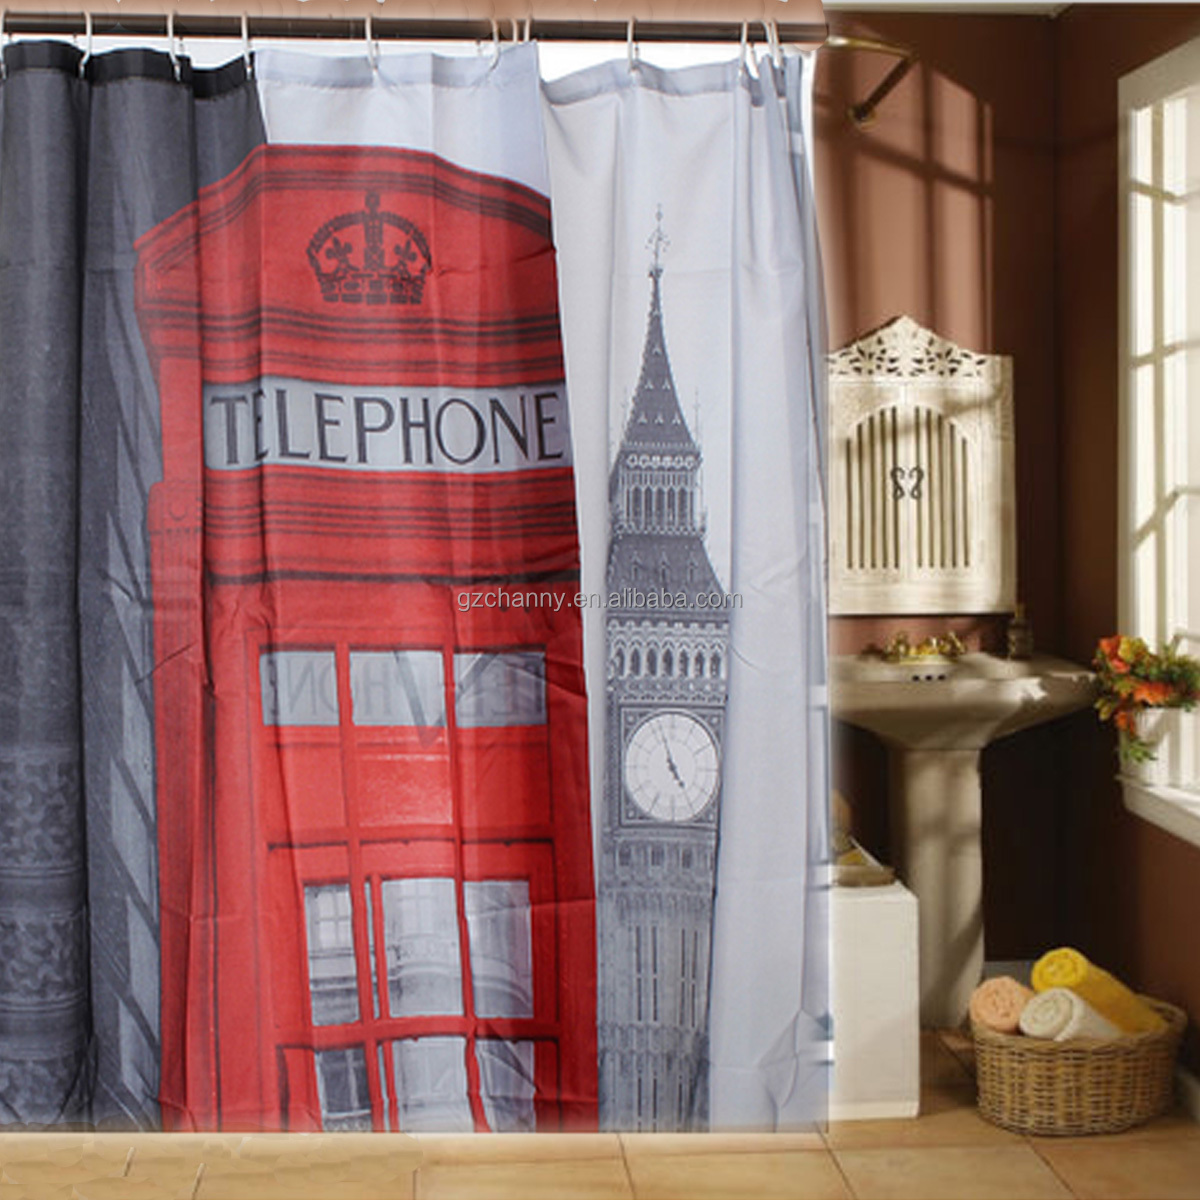 Wholesale diy home decor london big ben telephone booth for Home decor london